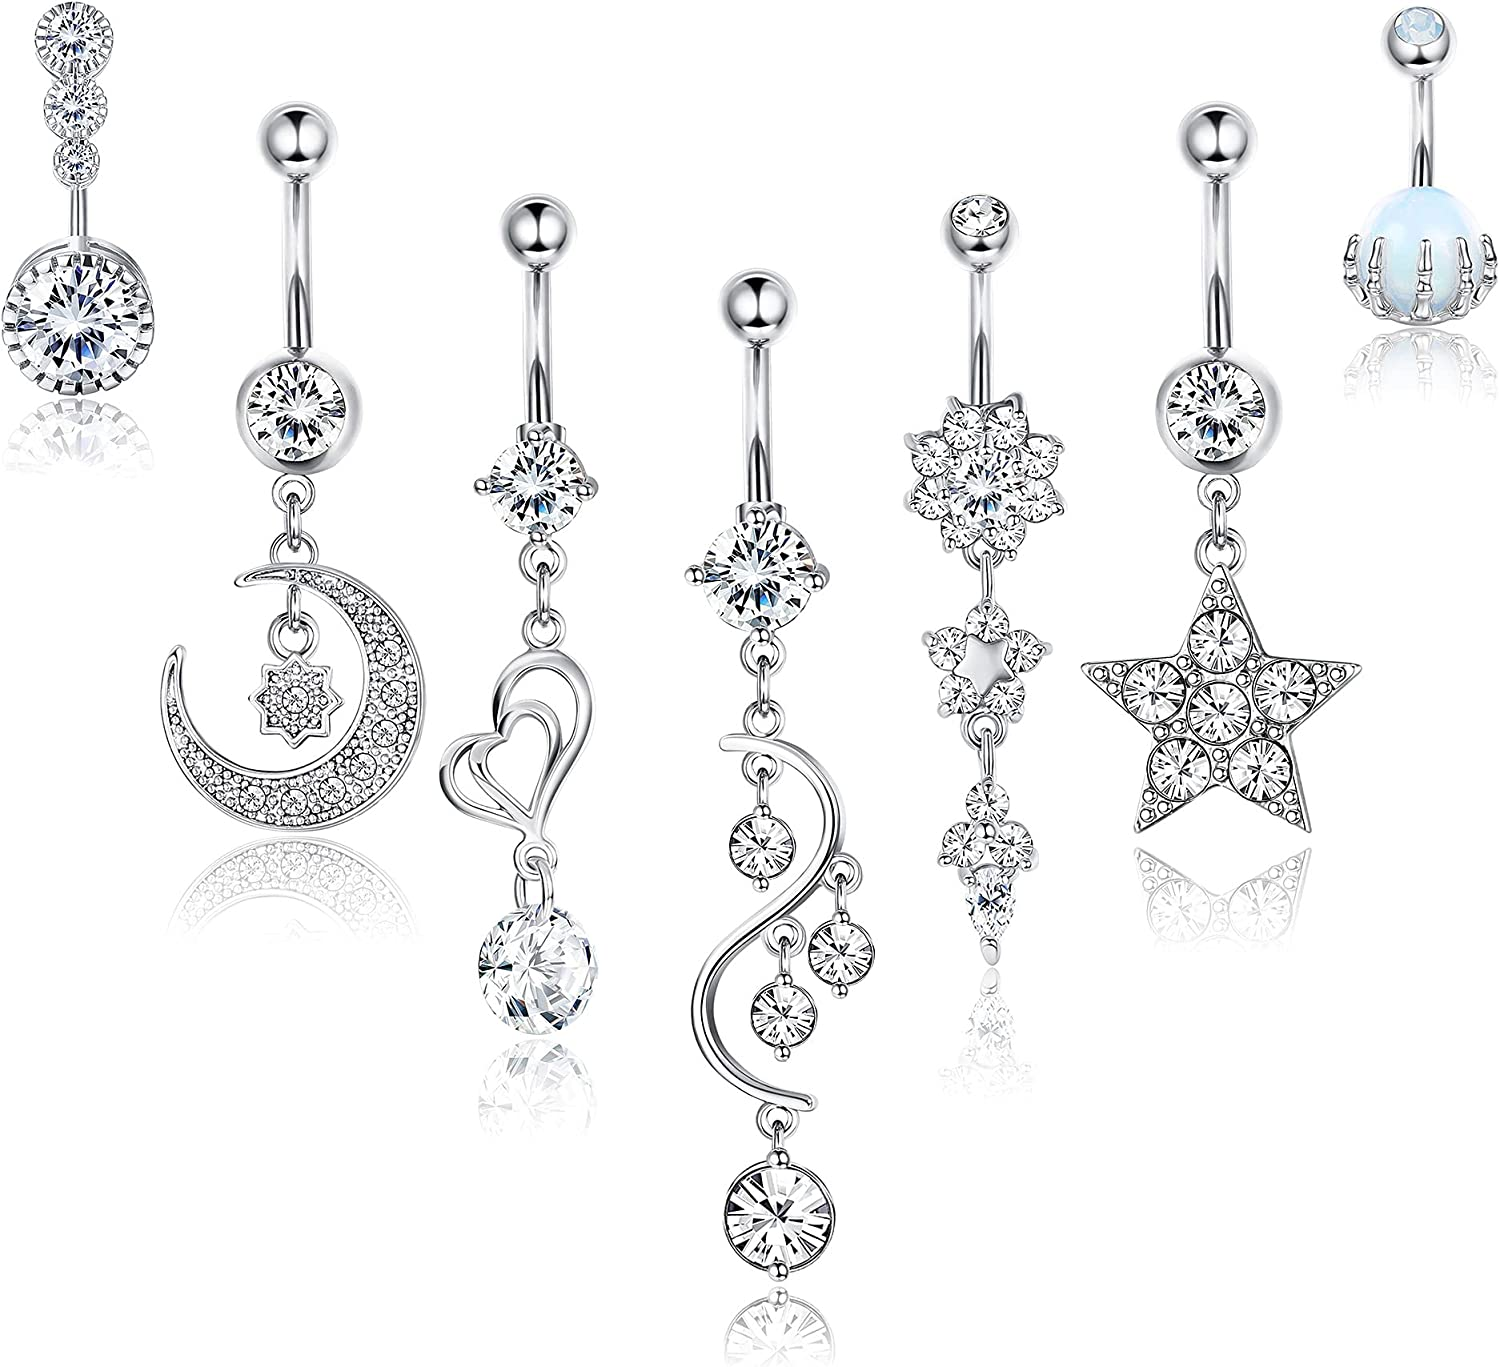 Jstyle 7Pcs 14G Belly Button Rings Dangle for Women Surgical Steel Navel Rings Barbell CZ Inlaid Moon Star Butterfly Body Piercing Jewelry